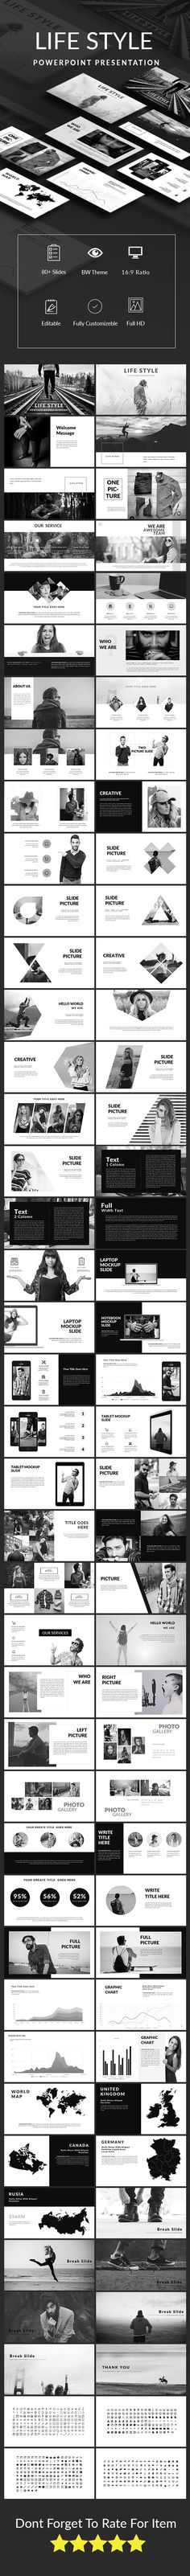 Life Style Powerpoint Presentation Template (PowerPoint Templates)